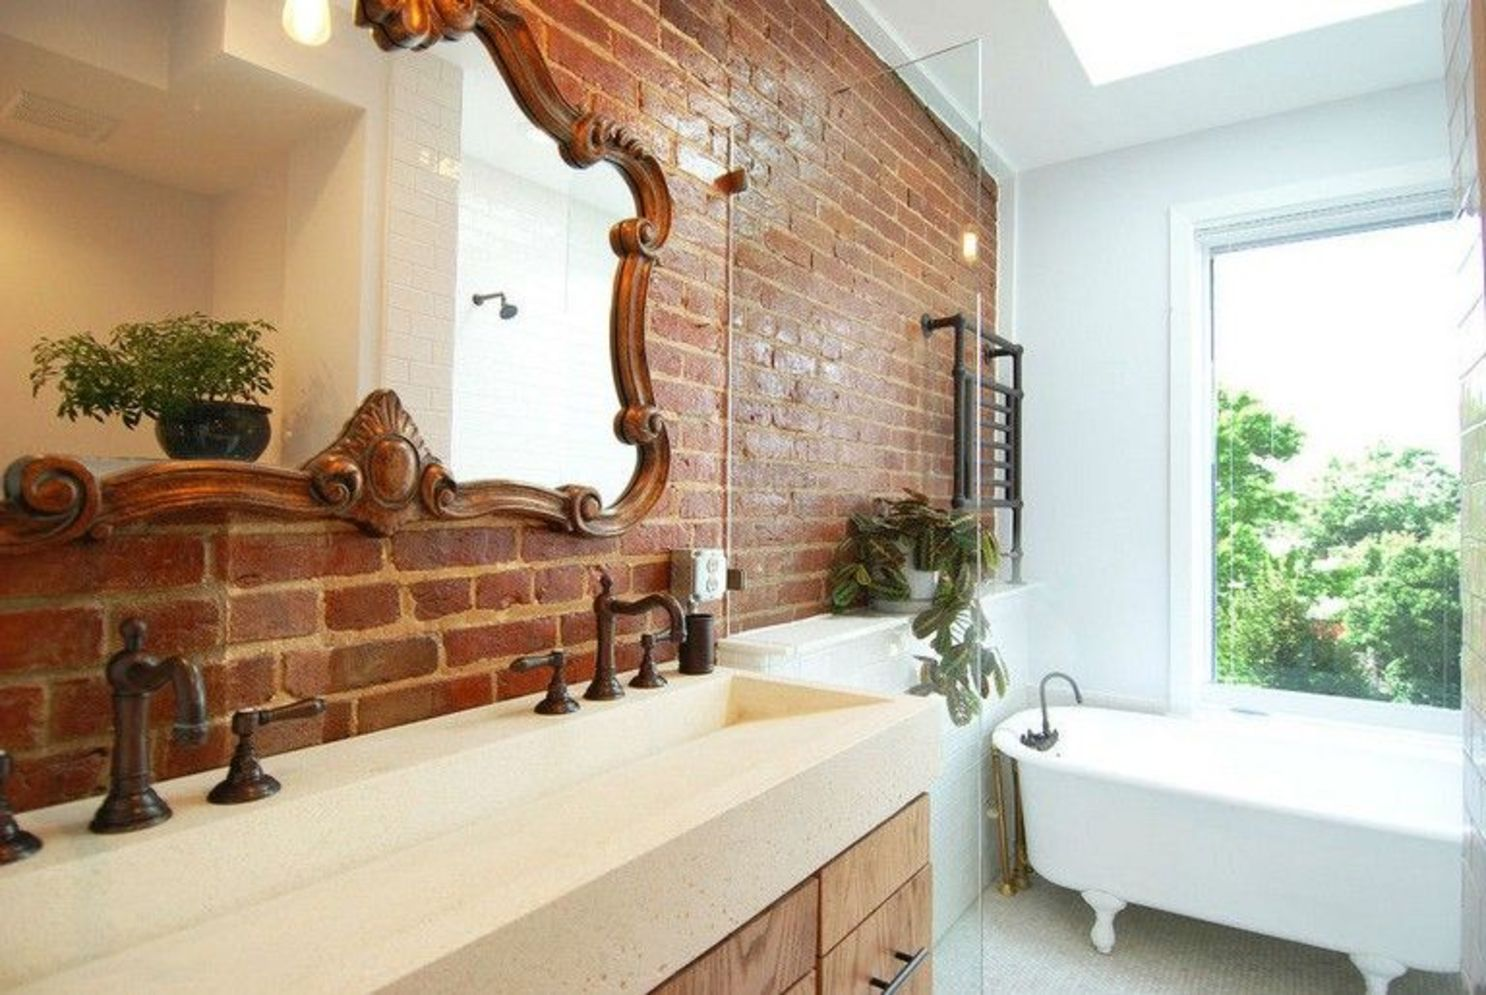 Modern rustic bathroom styles showing amazing viewpoint of brick wall decoration Image 44